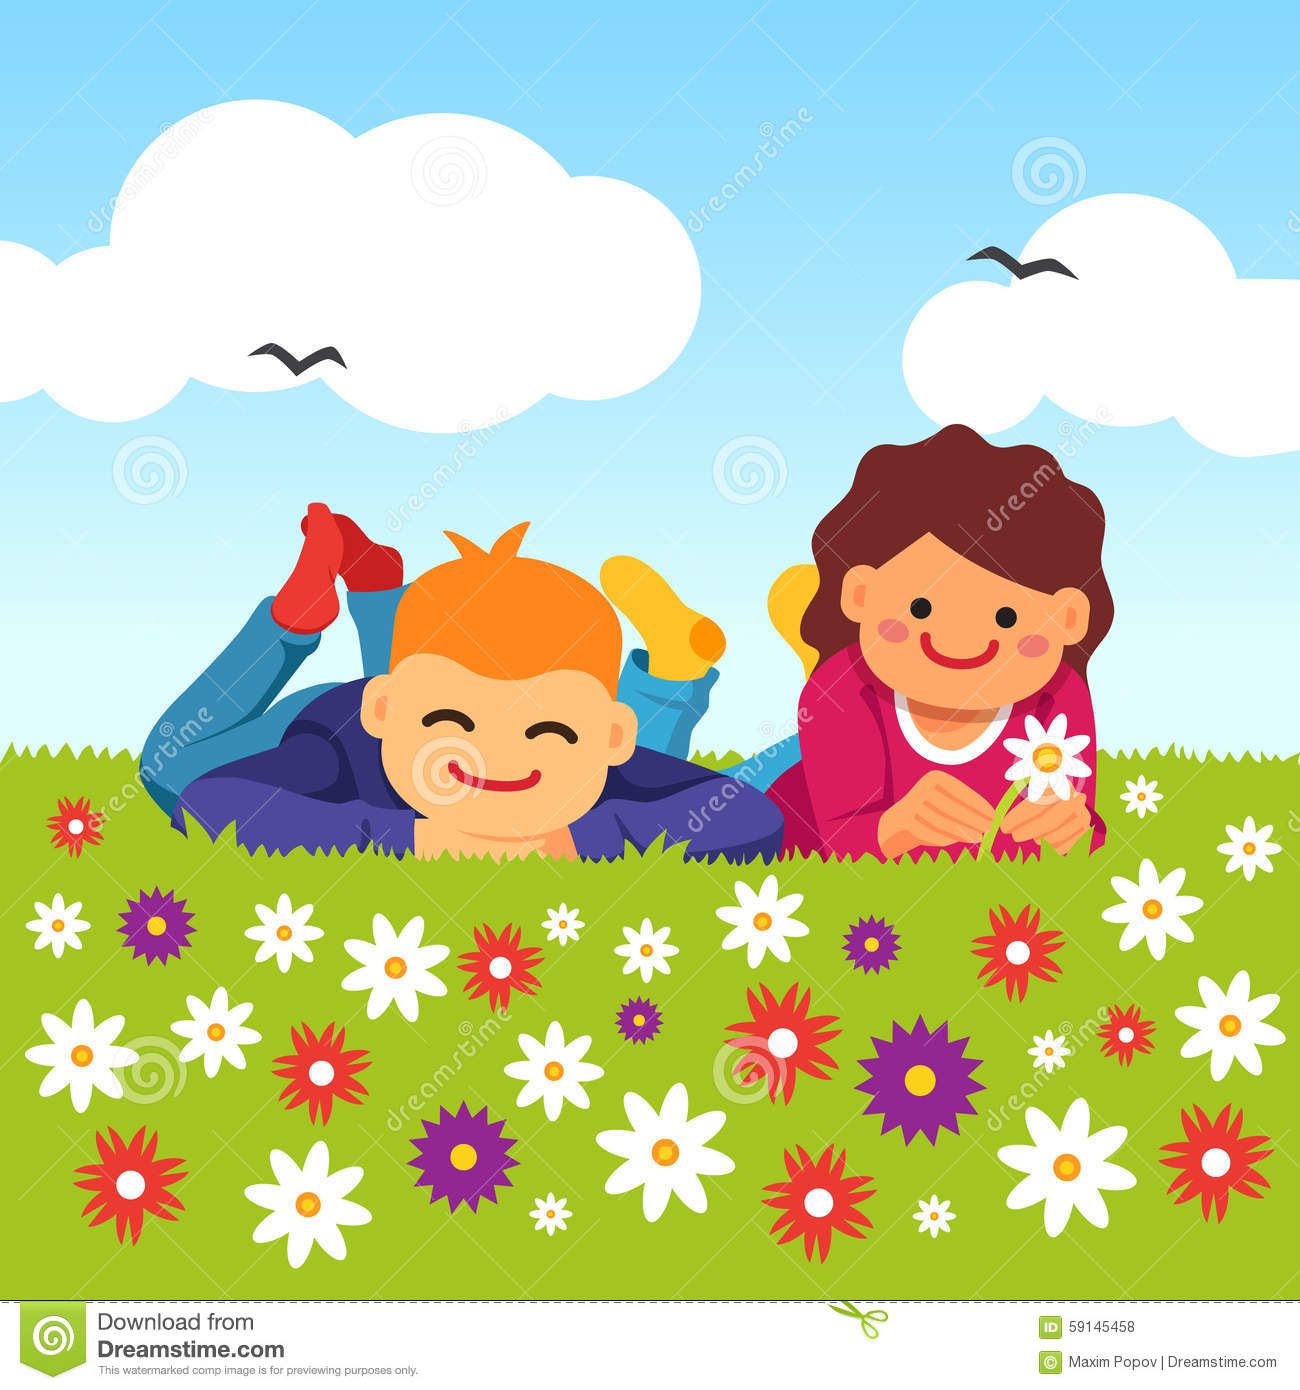 Laying down in grass clipart.